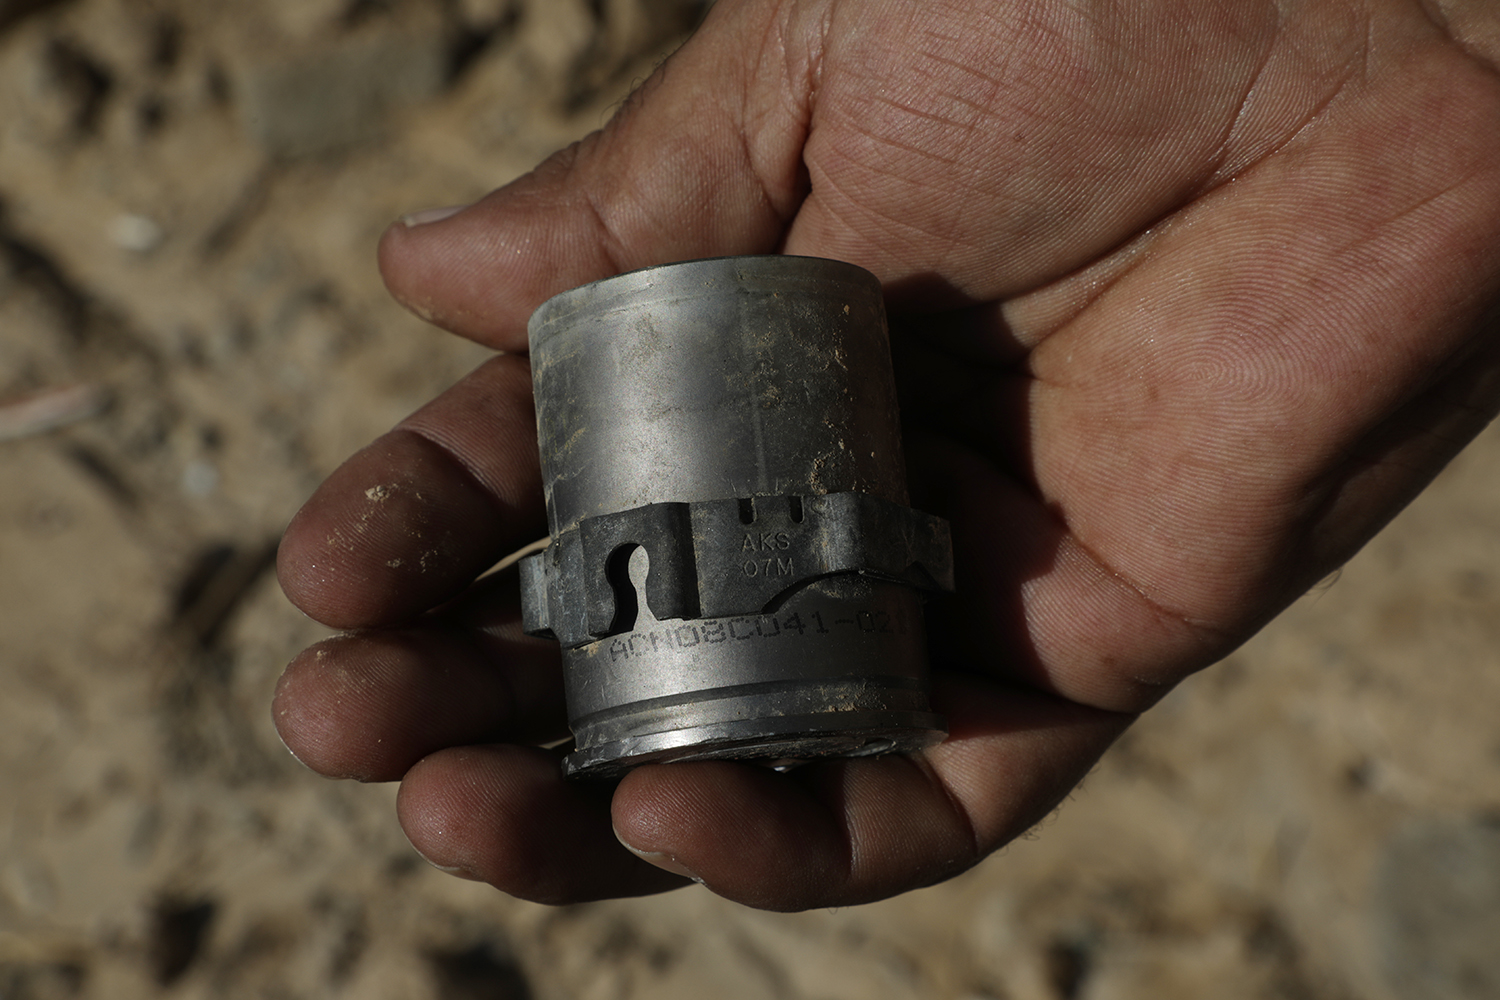 Grenade casings, shown on Sept. 19, 2019, were found on the shores of the Tigris River facing Kanoos Island, where an American armored vehicle reportedly fired rounds toward the island. A weapons expert identified the casing as 40 mm grenades, fired from an auto grenade launcher like an MK-19.